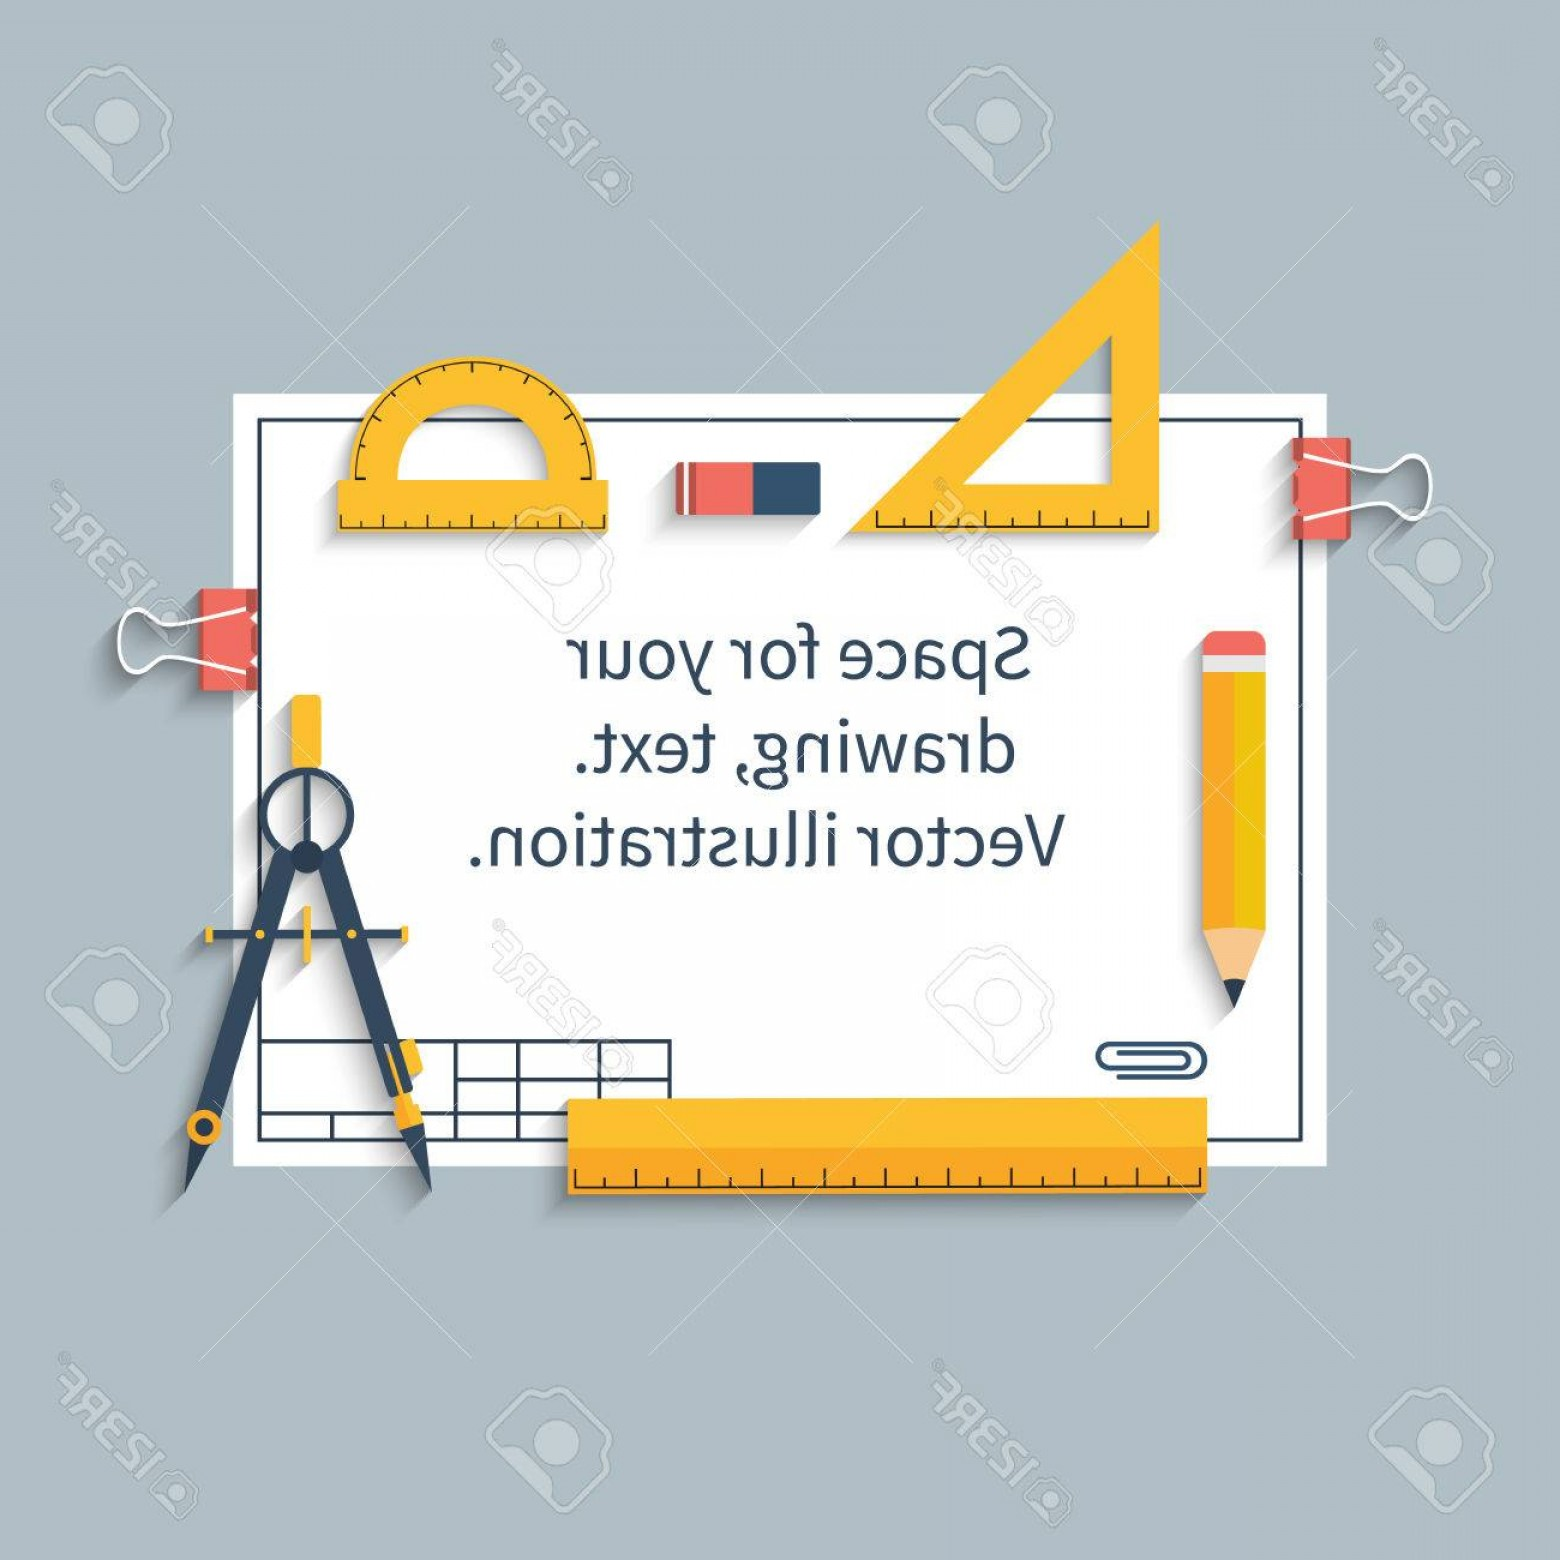 Tools For Text Vector: Lovely Photostock Vector Drawing Tools On Paper With Space For Drawings And Text Ruler Protractor Compass Pencil Paper Vector